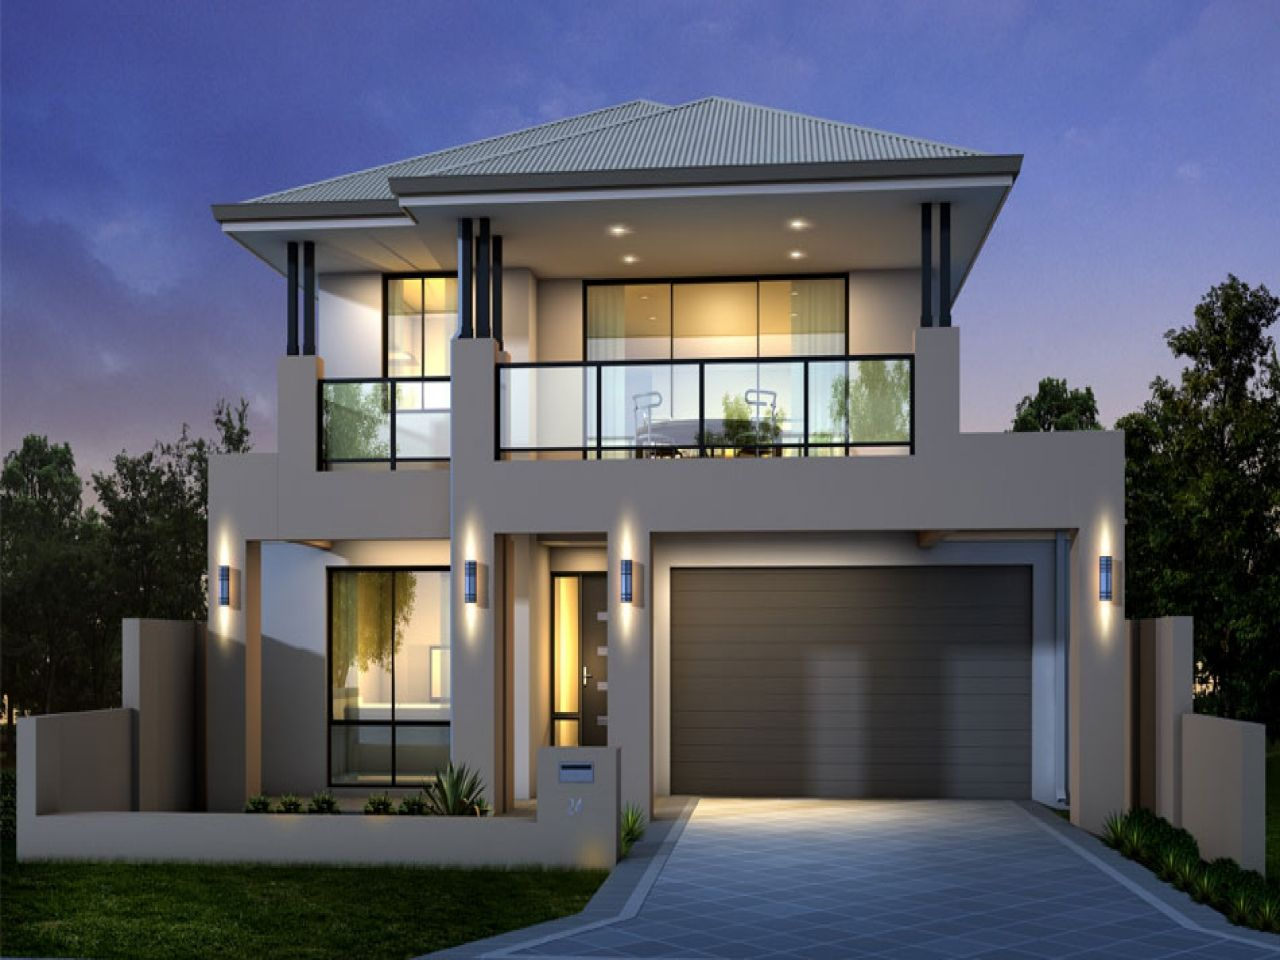 Modern two story house designs philippines home design plans also storey single rh ar pinterest